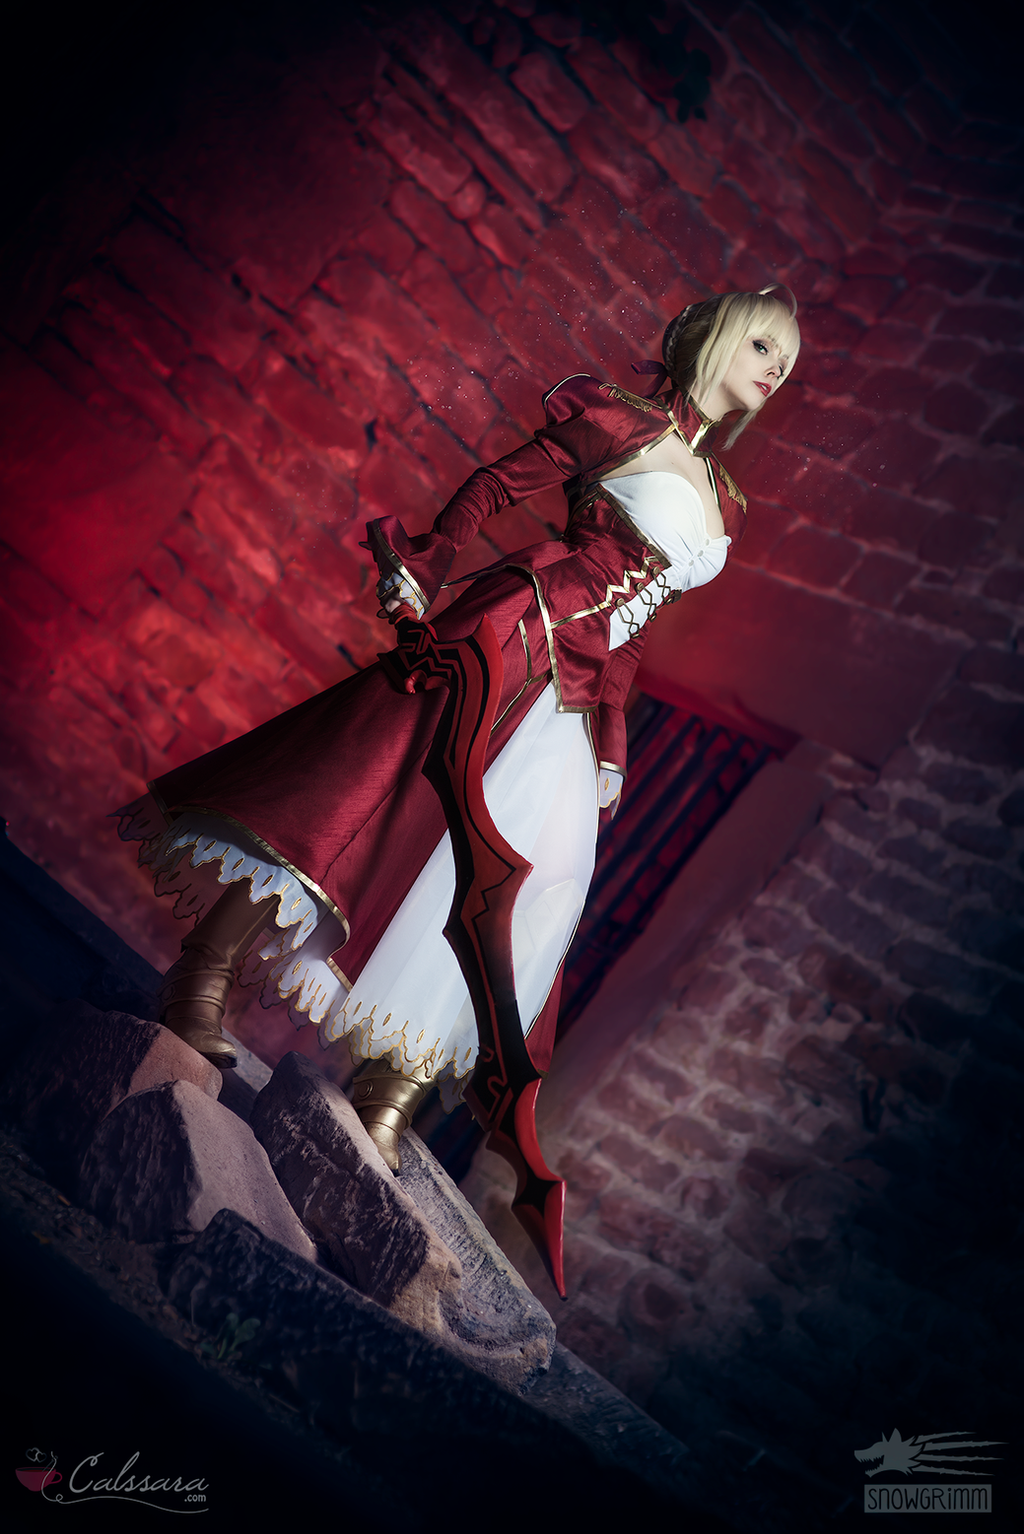 Fate nero sword - Fate/EXTRA Last Encore 01 (Another Saber